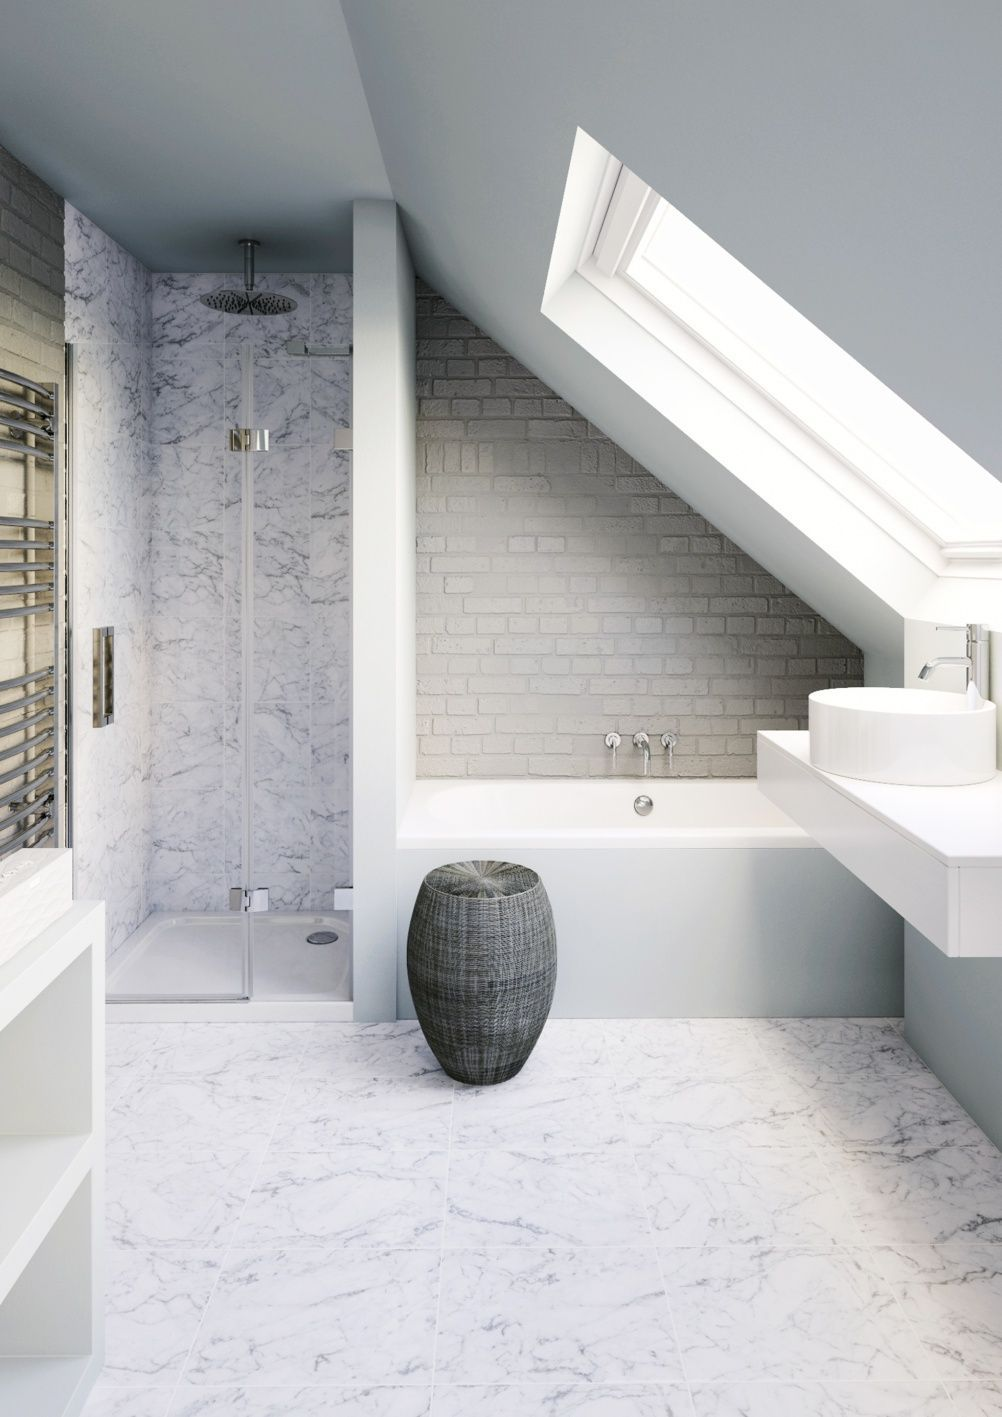 Loft Conversion Bathroom With Fittings From Bathrooms Com In 2020 Loft Bathroom Small Bathroom Remodel Bathroom Trends 2018